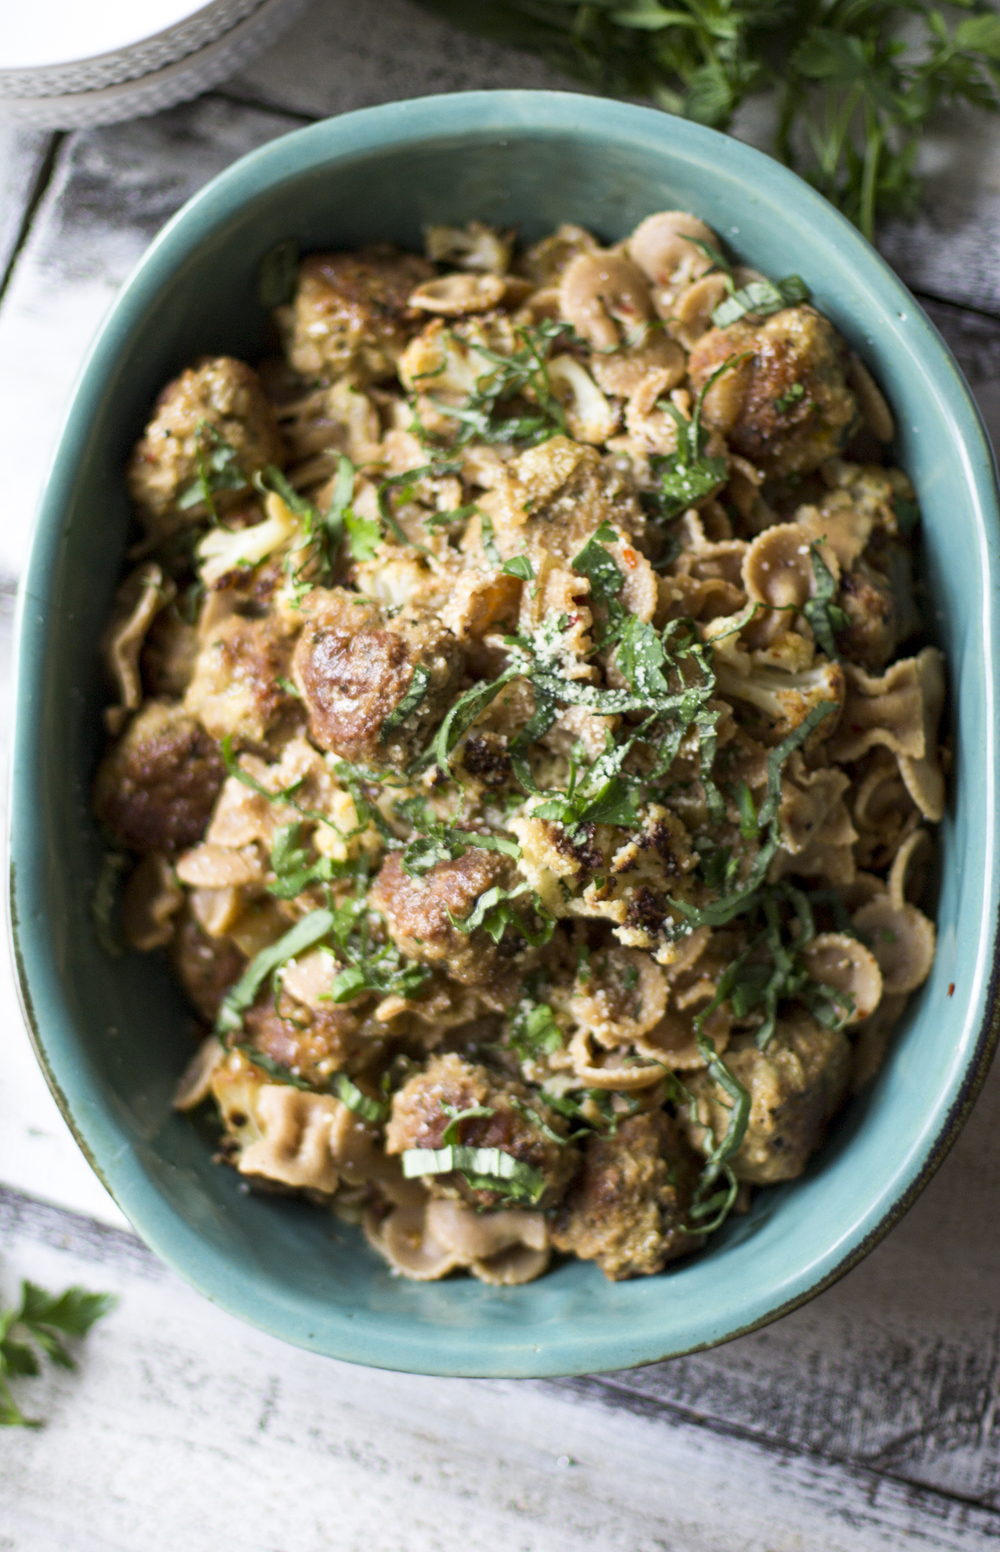 Roasted Cauliflower and Whole Wheat Pasta with Pork Meatballs: My Diary of Us